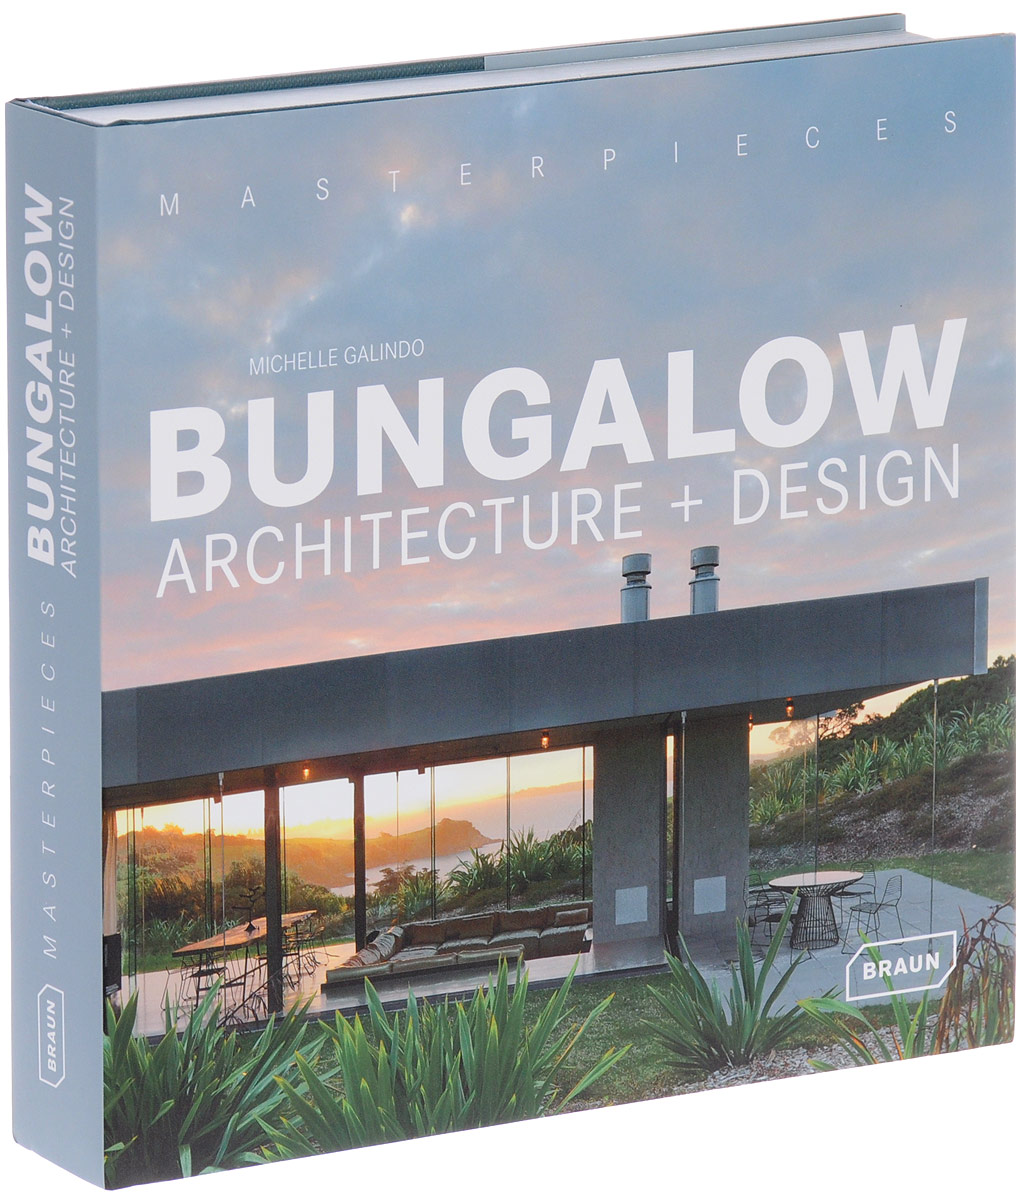 Masterpieces: Bungalow Architecture + Design malcolm kemp extreme events robust portfolio construction in the presence of fat tails isbn 9780470976791